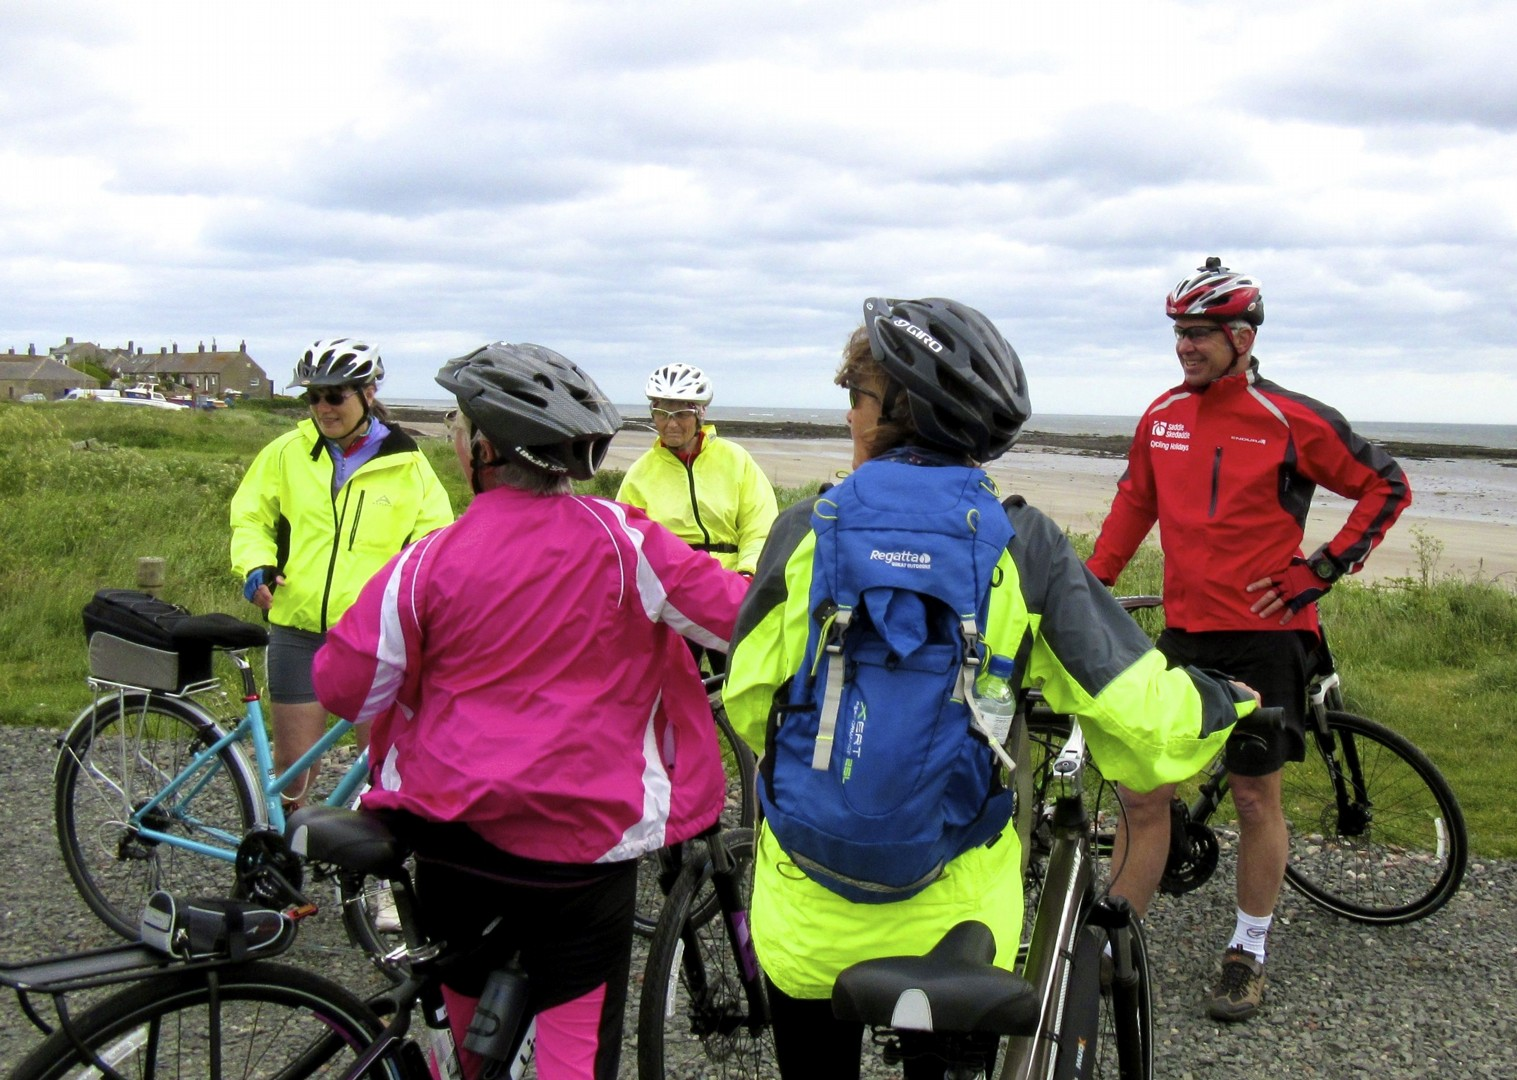 leisure-cycling-holiday-northumberland-cyclists-coast.jpg - UK - Northumberland - Alnmouth - Guided Leisure Cycling Holiday - Leisure Cycling